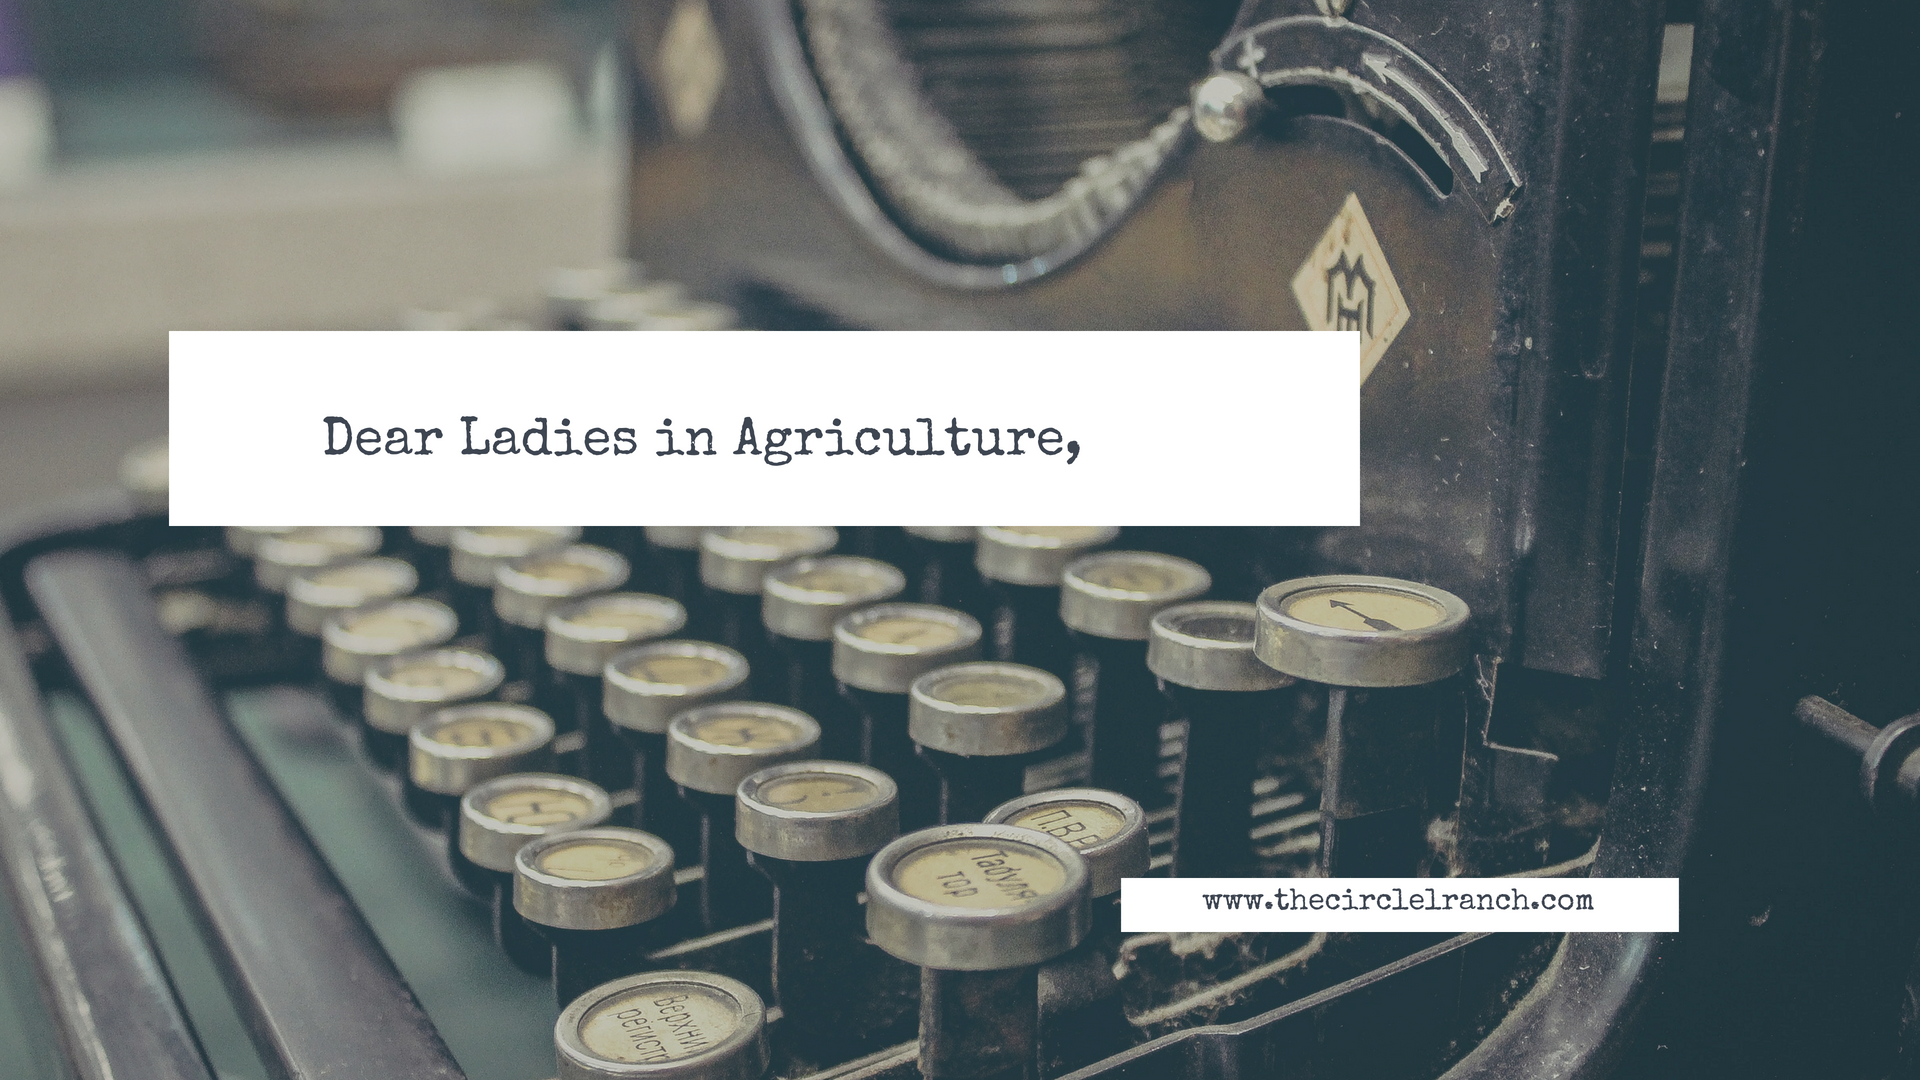 Dear Ladies In Agriculture